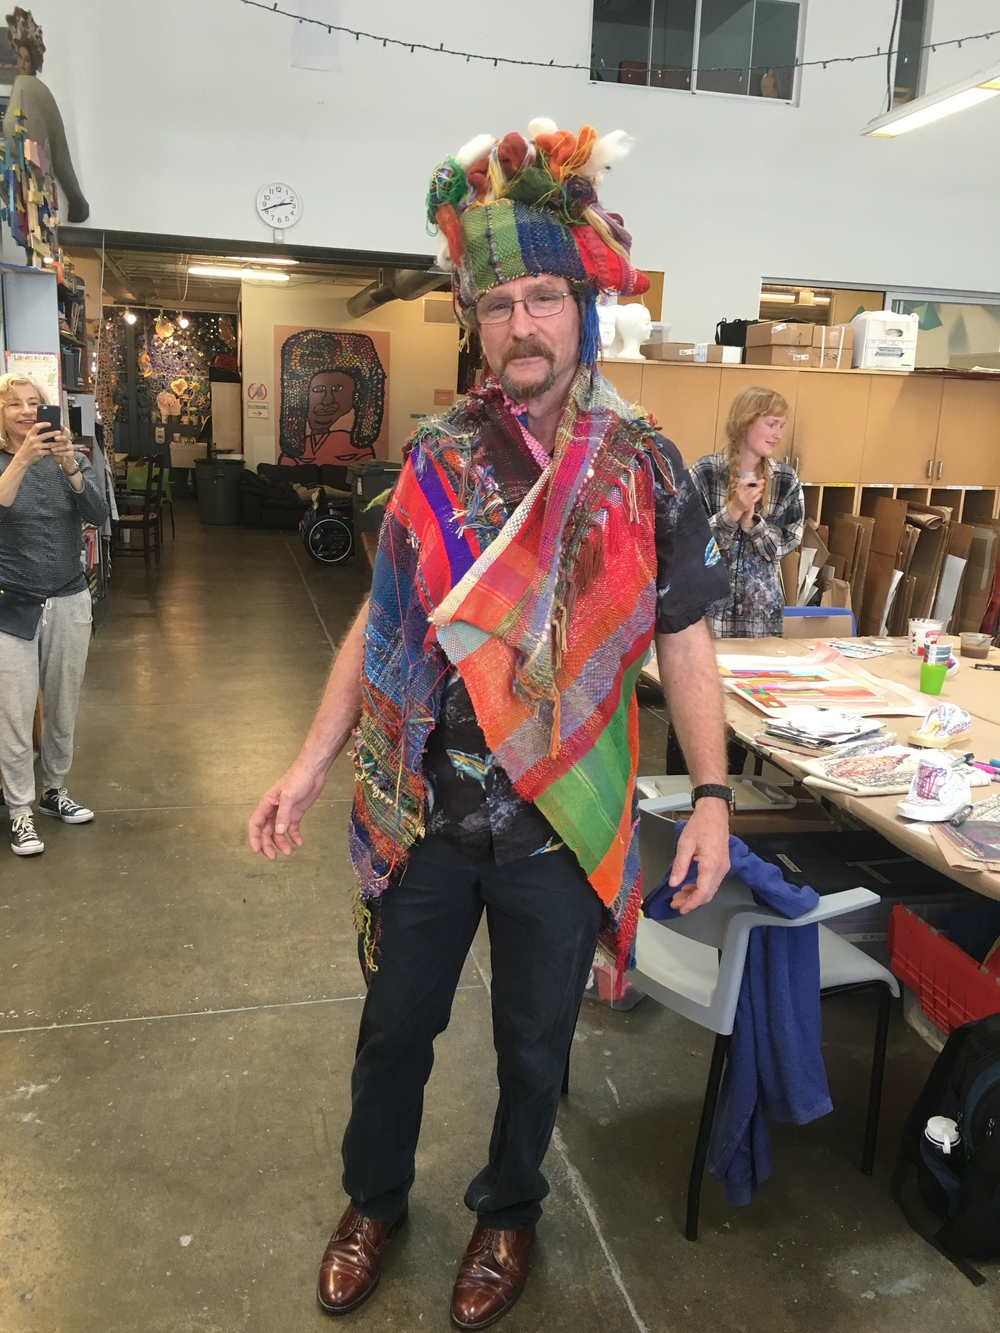 Pete modeling the hand stitched hat he made using Tony Pedemonte's woven sculpture. Communally SAORI woven vest.